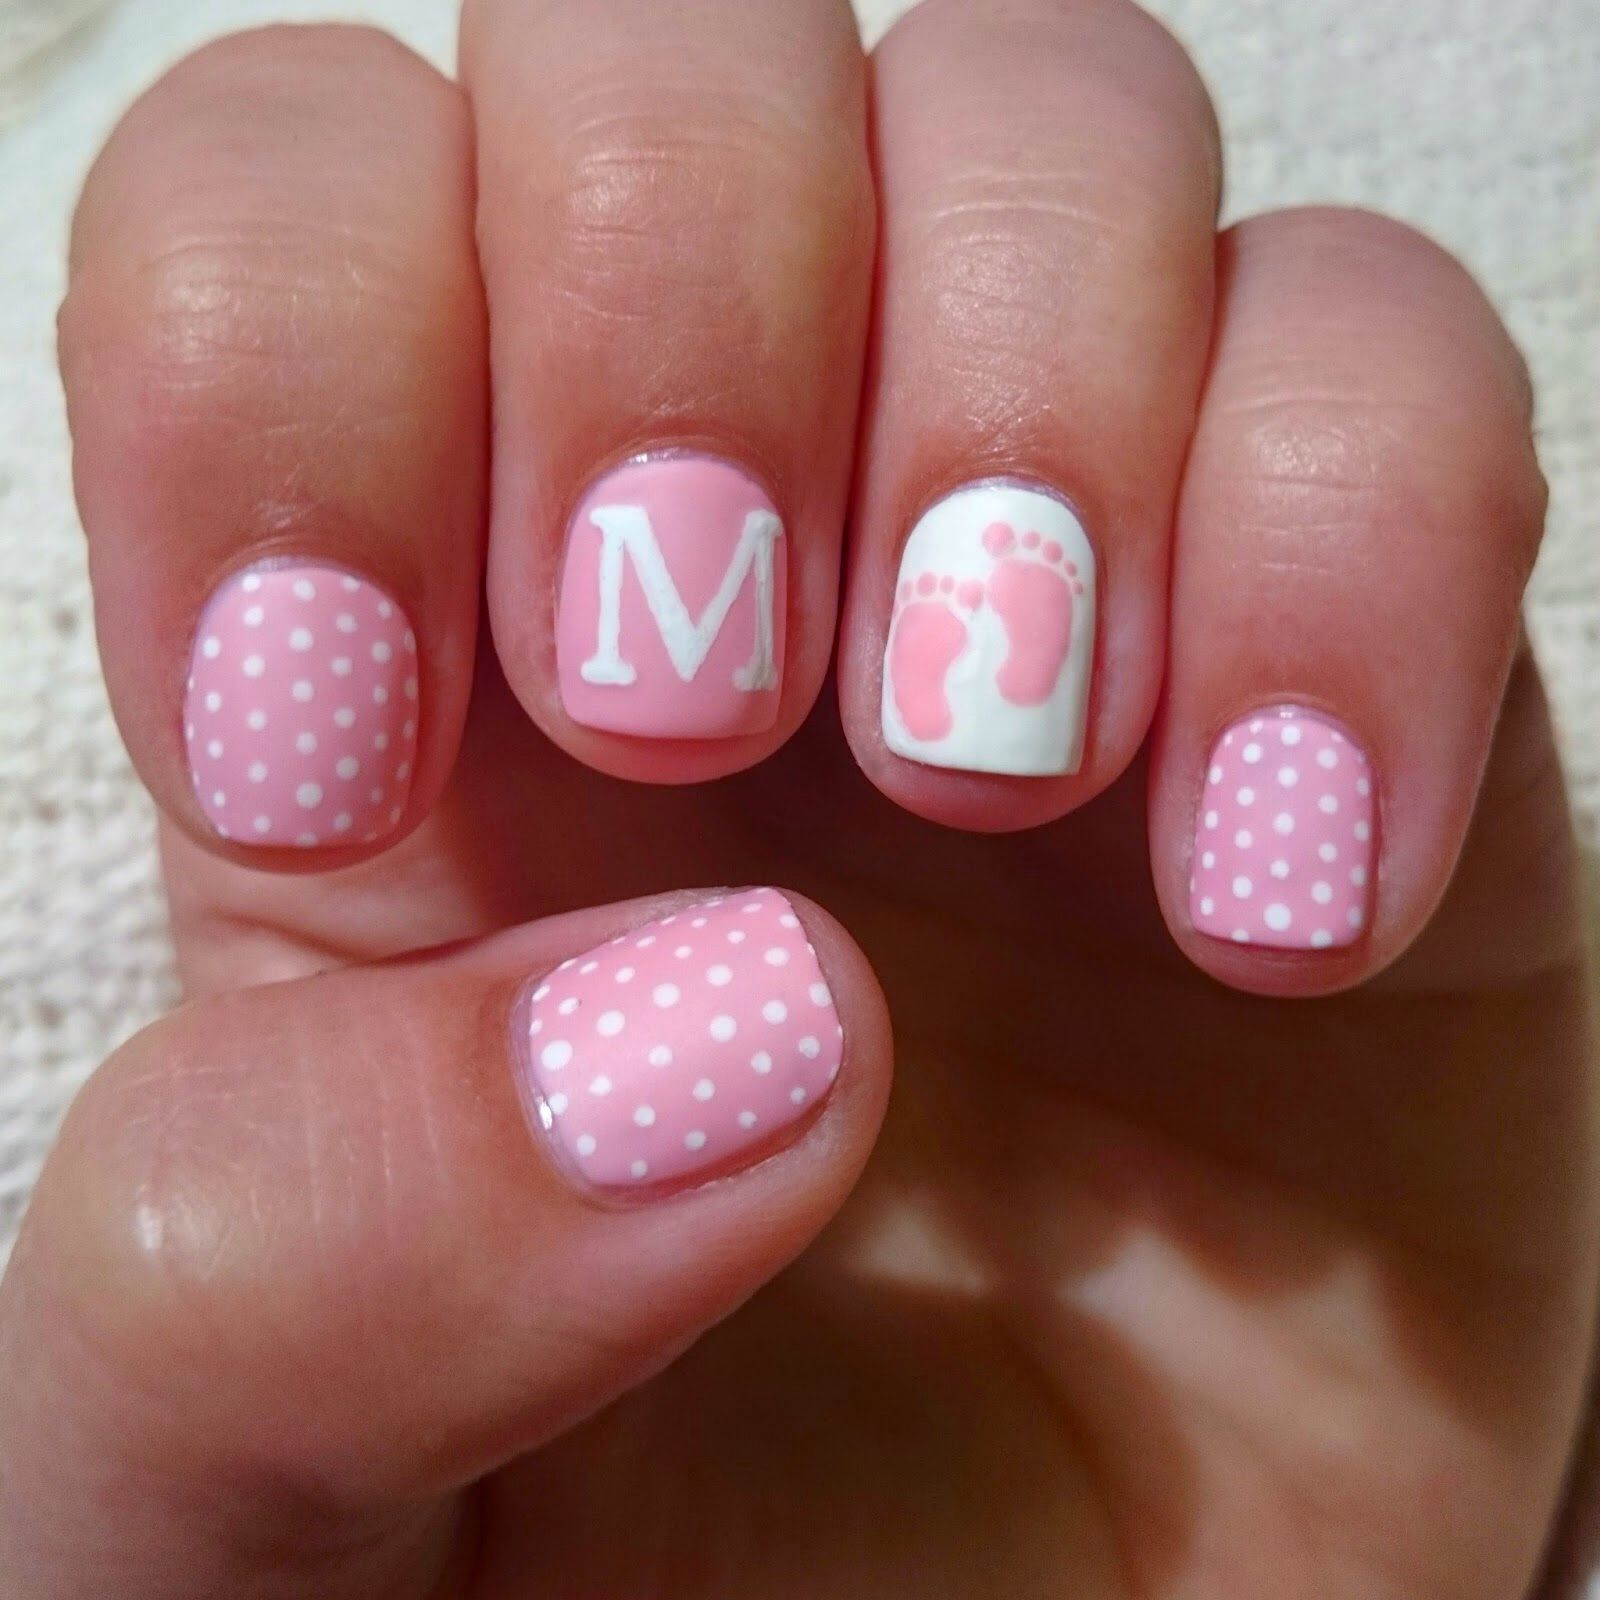 Pin von Melissa Maldonado auf Nails to try | Pinterest | Gelnägel ...